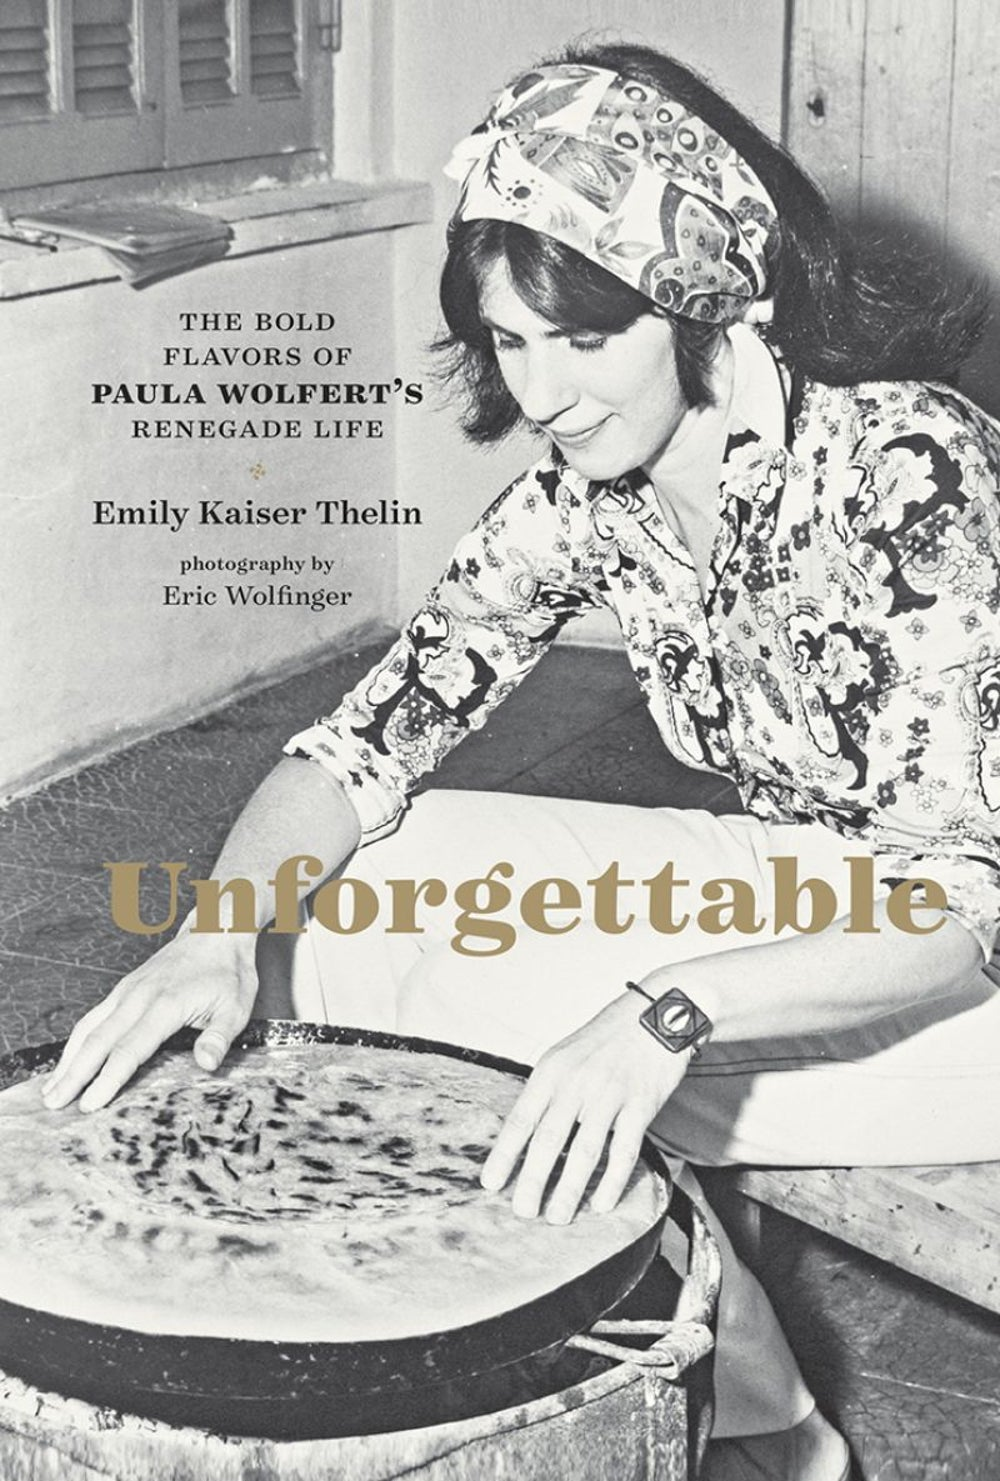 Unforgettable: The Bold Flavors of Paula Wolfert's Renegade Life by Emily Kaiser Thelin